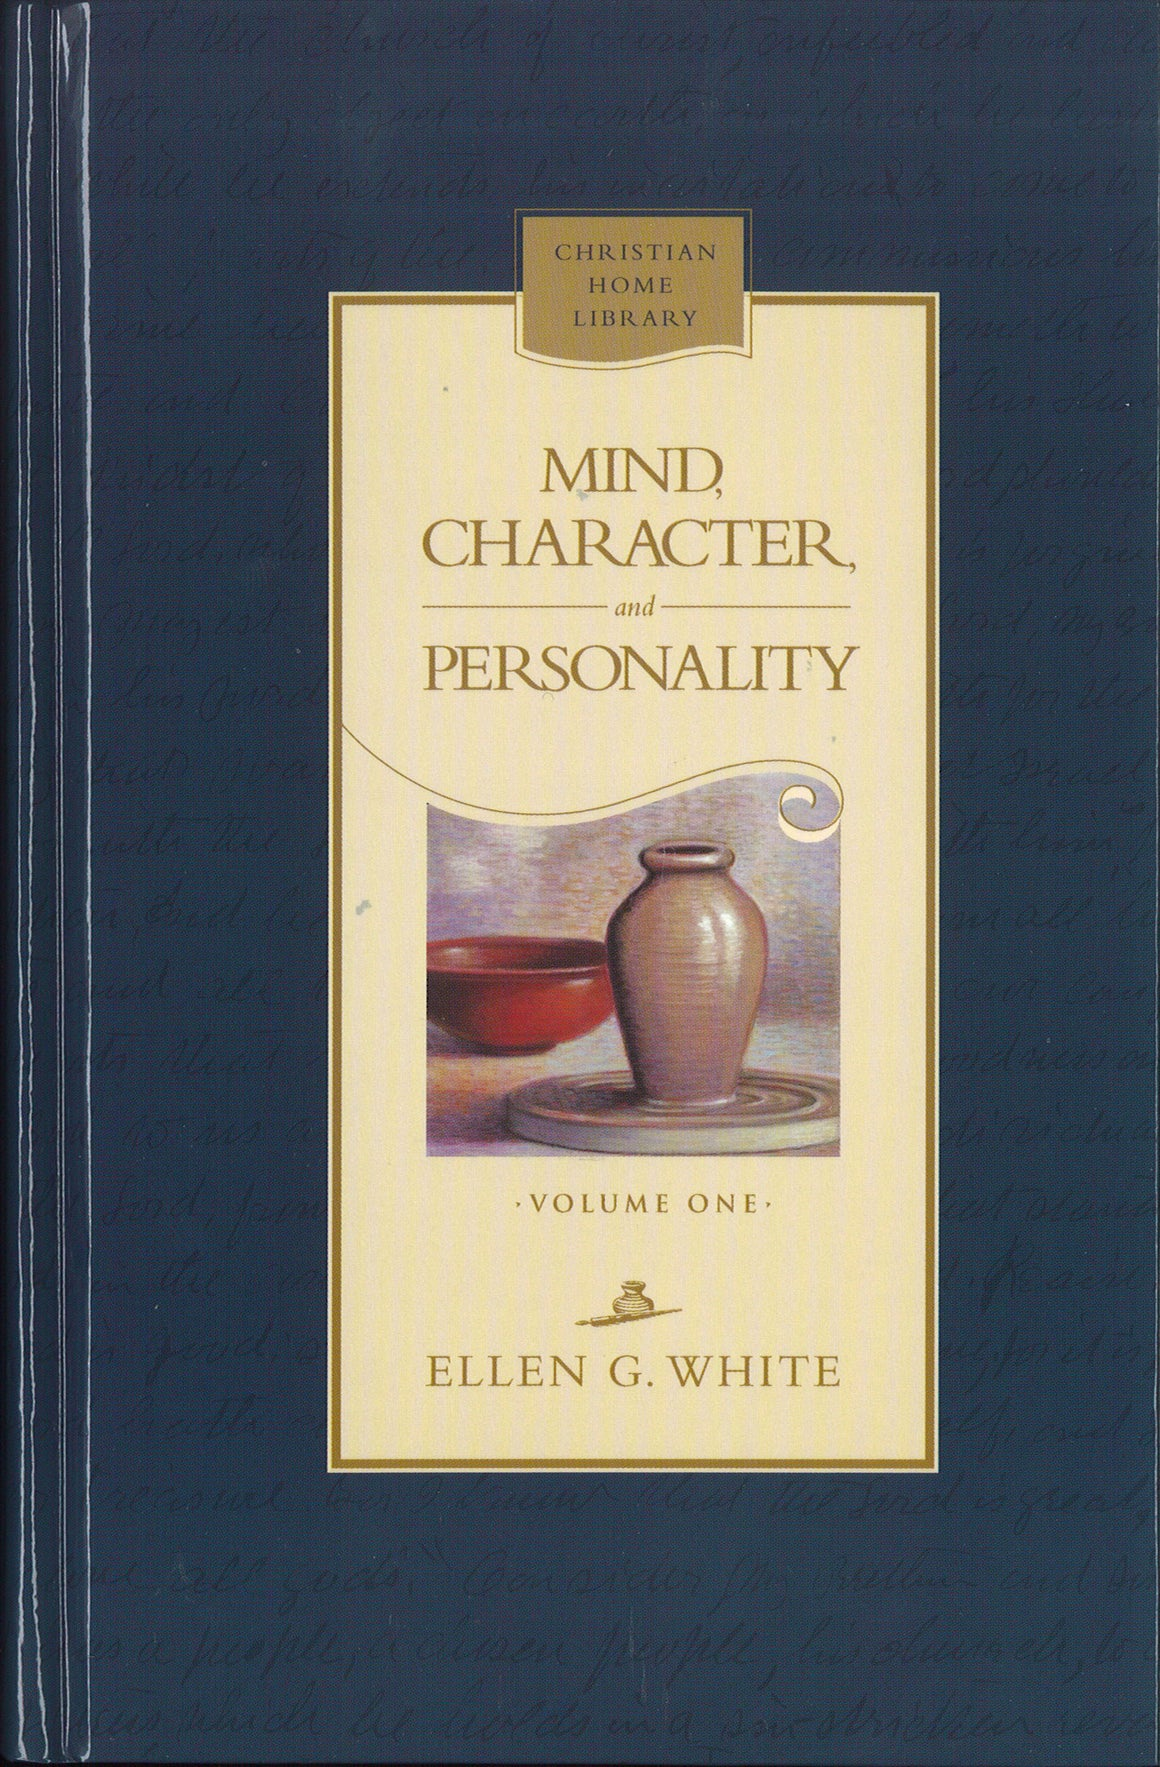 Mind, Character, and Personality, Vol. 1, CHL